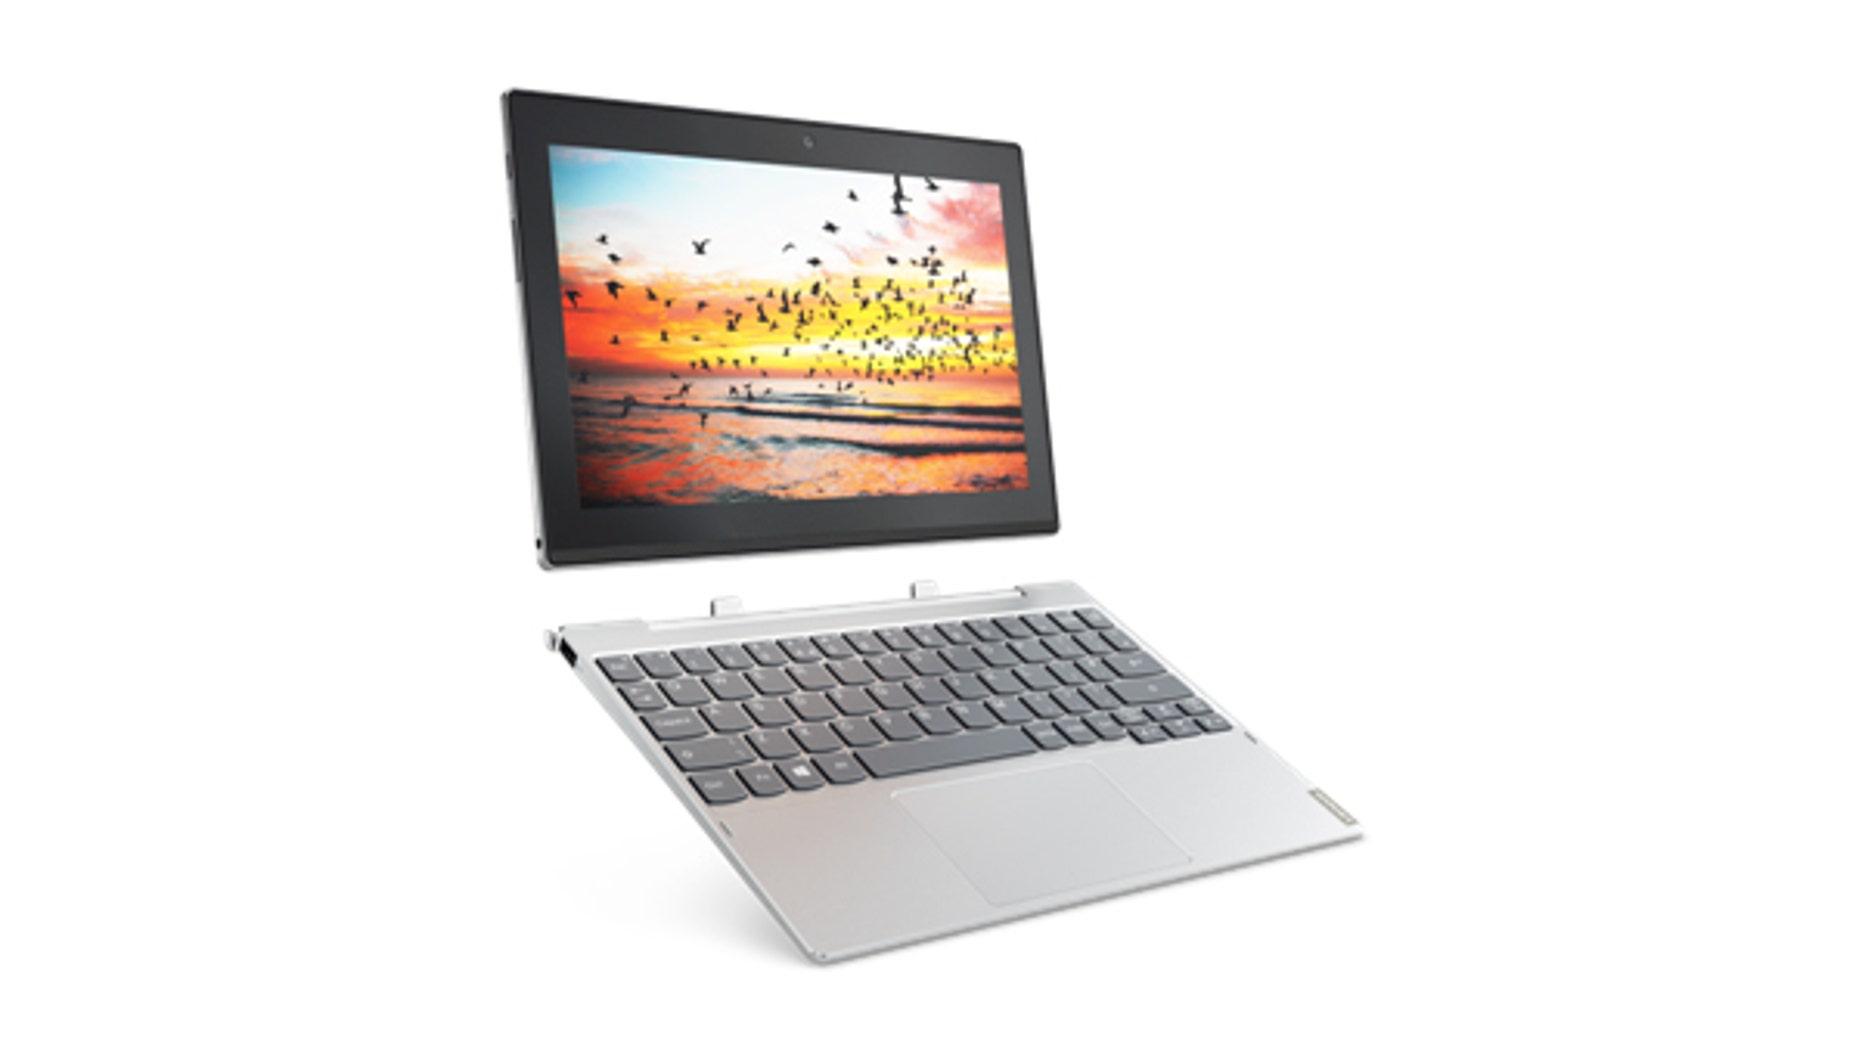 Lenovo Miix 320 Windows 10 detachable in Platinum Silver (Lenovo).